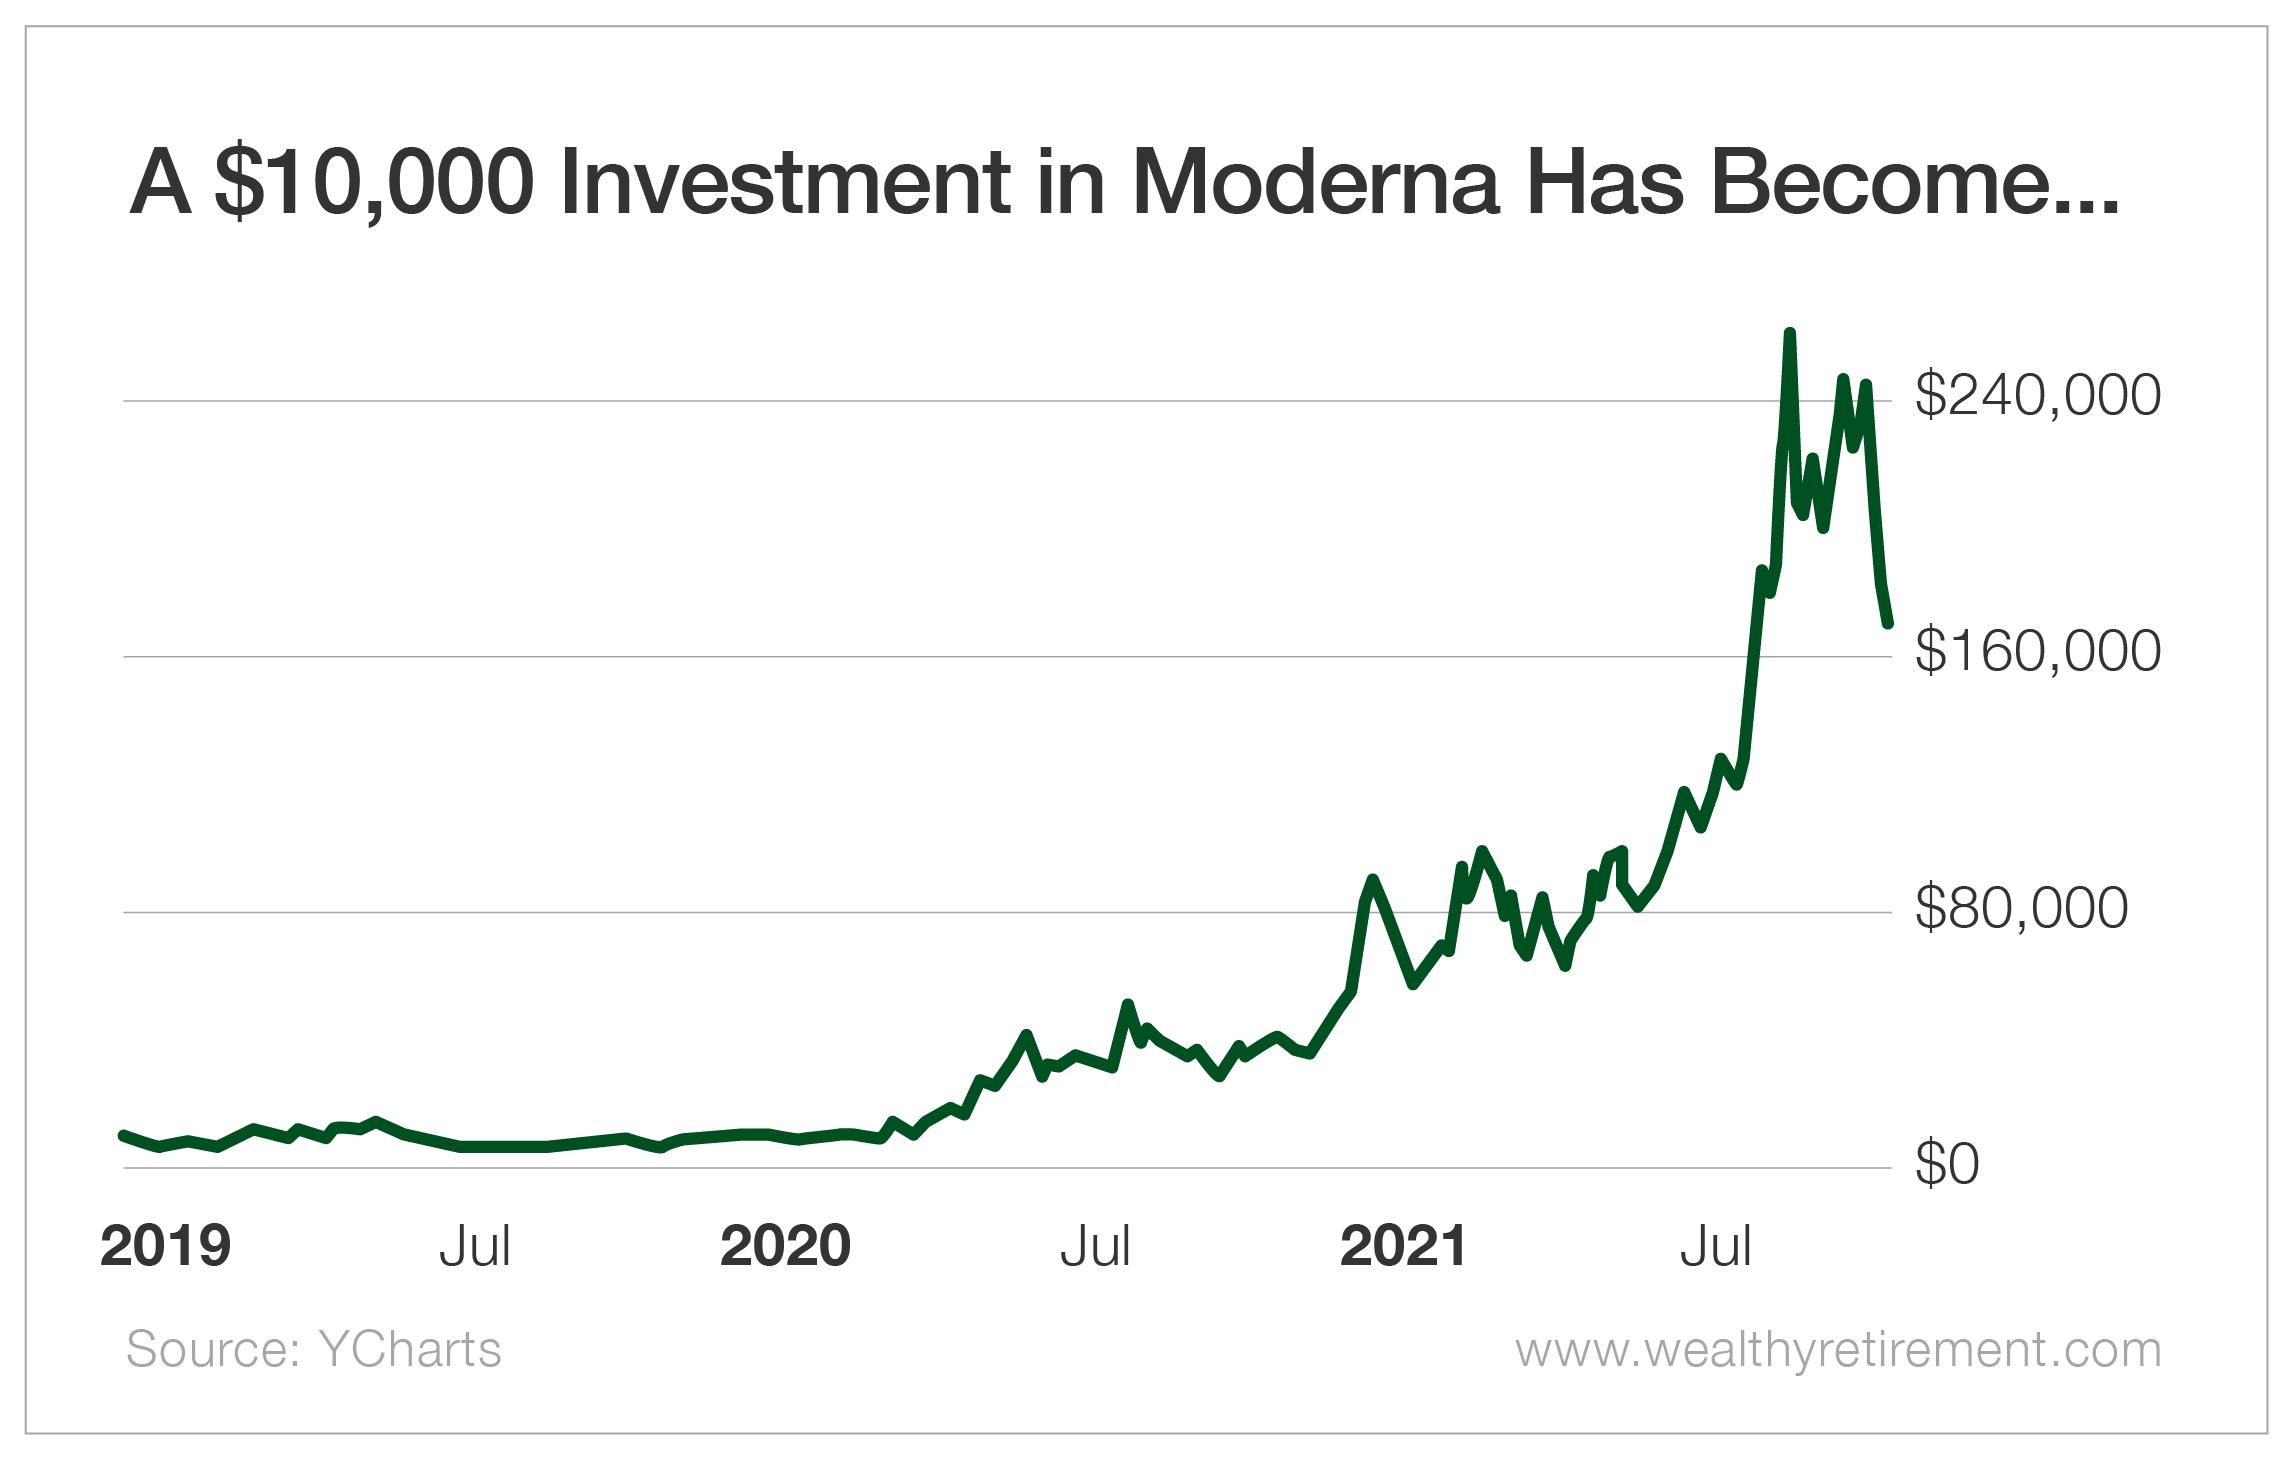 A $10,000 Investment in Moderna Has Become...